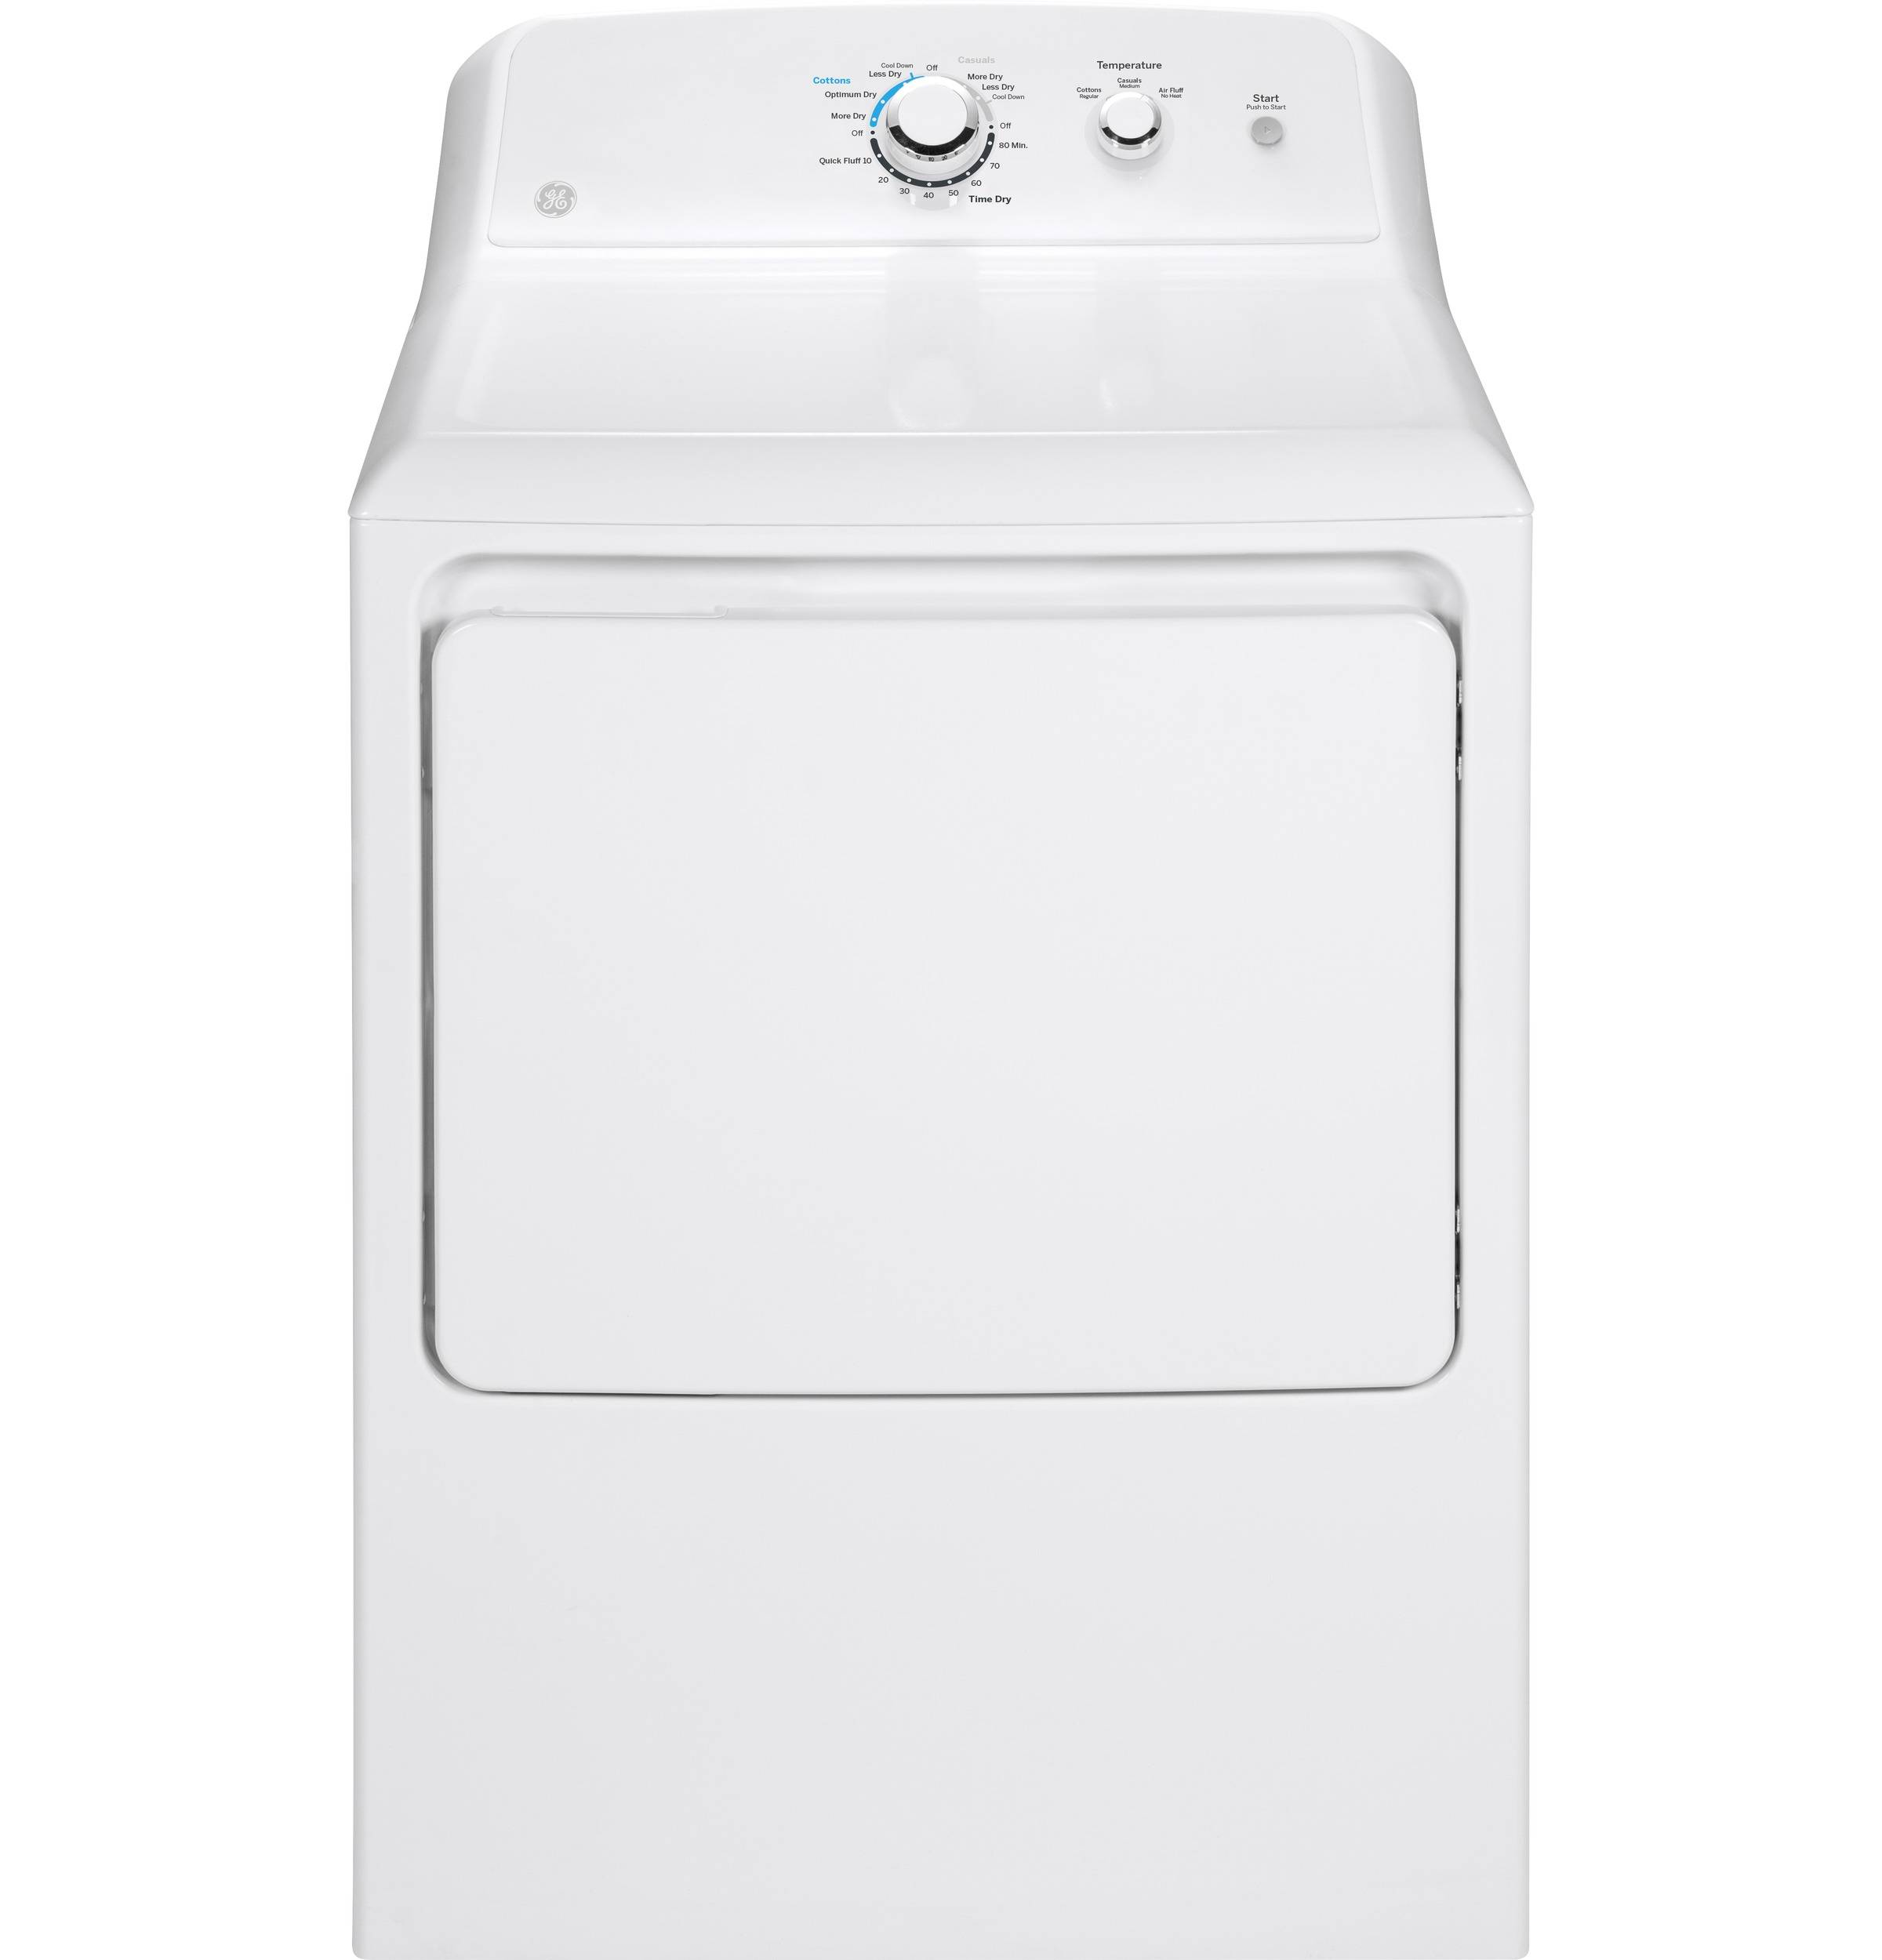 Shop Dryers at Lowes